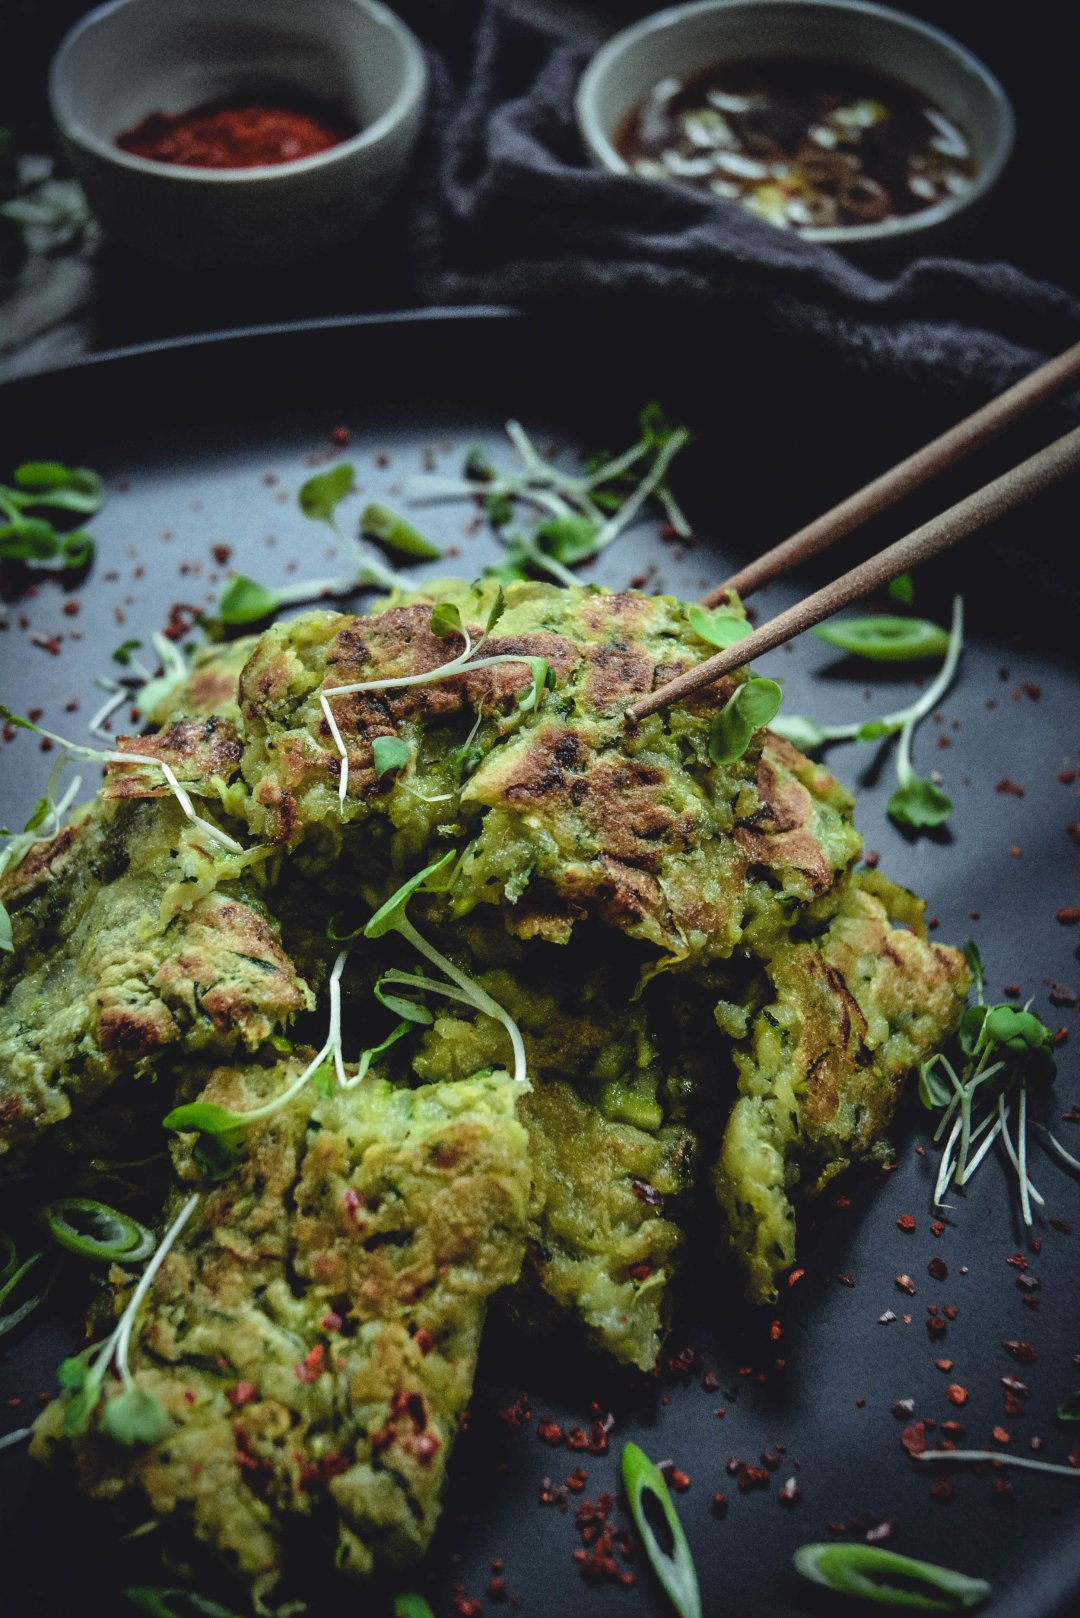 A delicious crispy zucchini pancakes dipped in a mouthwatering sweet and sour sauce. Recipe created by Jean Choi, author of Korean Paleo. @whatgreatgrandmaate #whatgreatgrandmaate #koreanpaleocookbook #koreanfood #zucchinipancakes #koreanzucchinipancakes #paleo #vegan #glutenfree #dairyfree #calmeats #jeanchoi